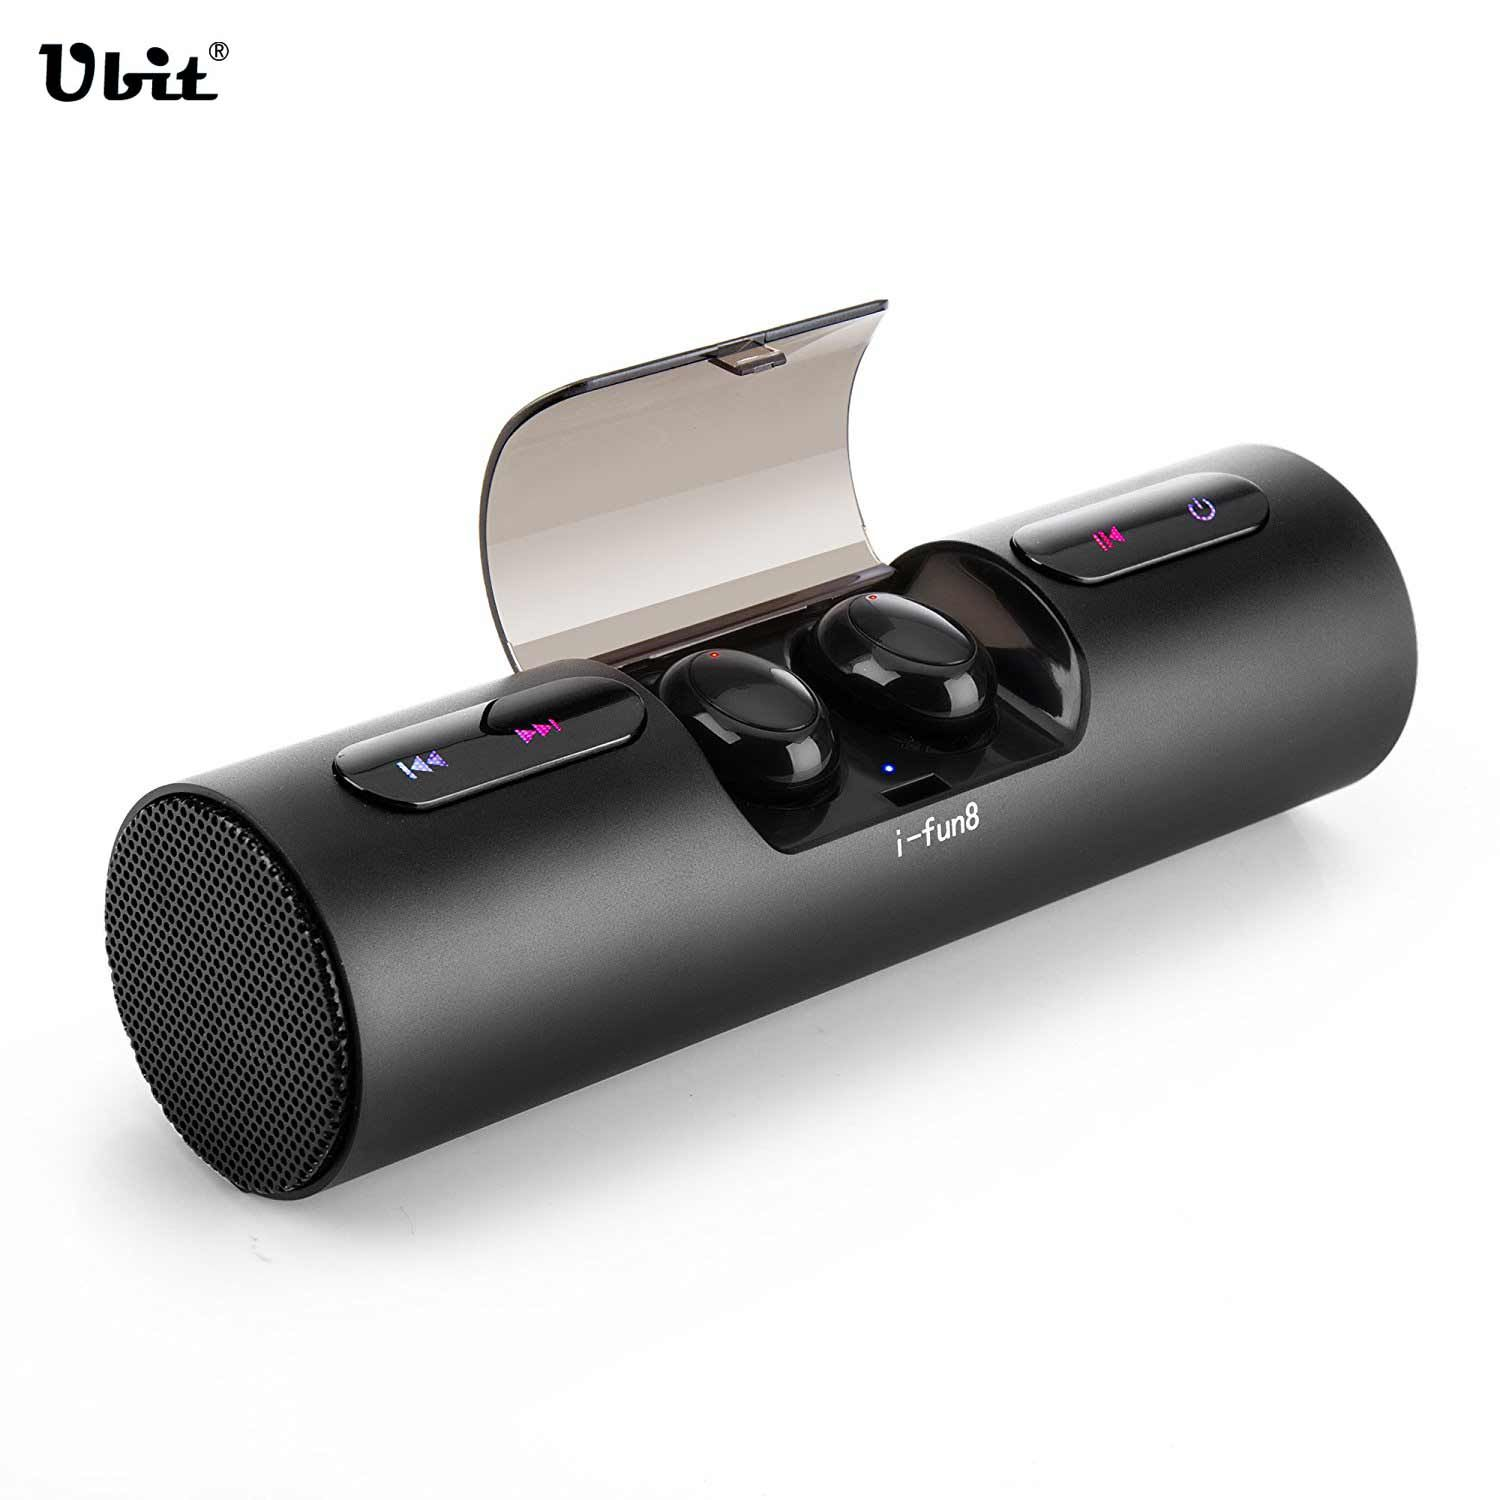 Ubit Bluetooth Speaker Built-in Mic Hands-free Call Portable Sound Perfect Speakers with TWS Wireless Earbuds For SmartPhone